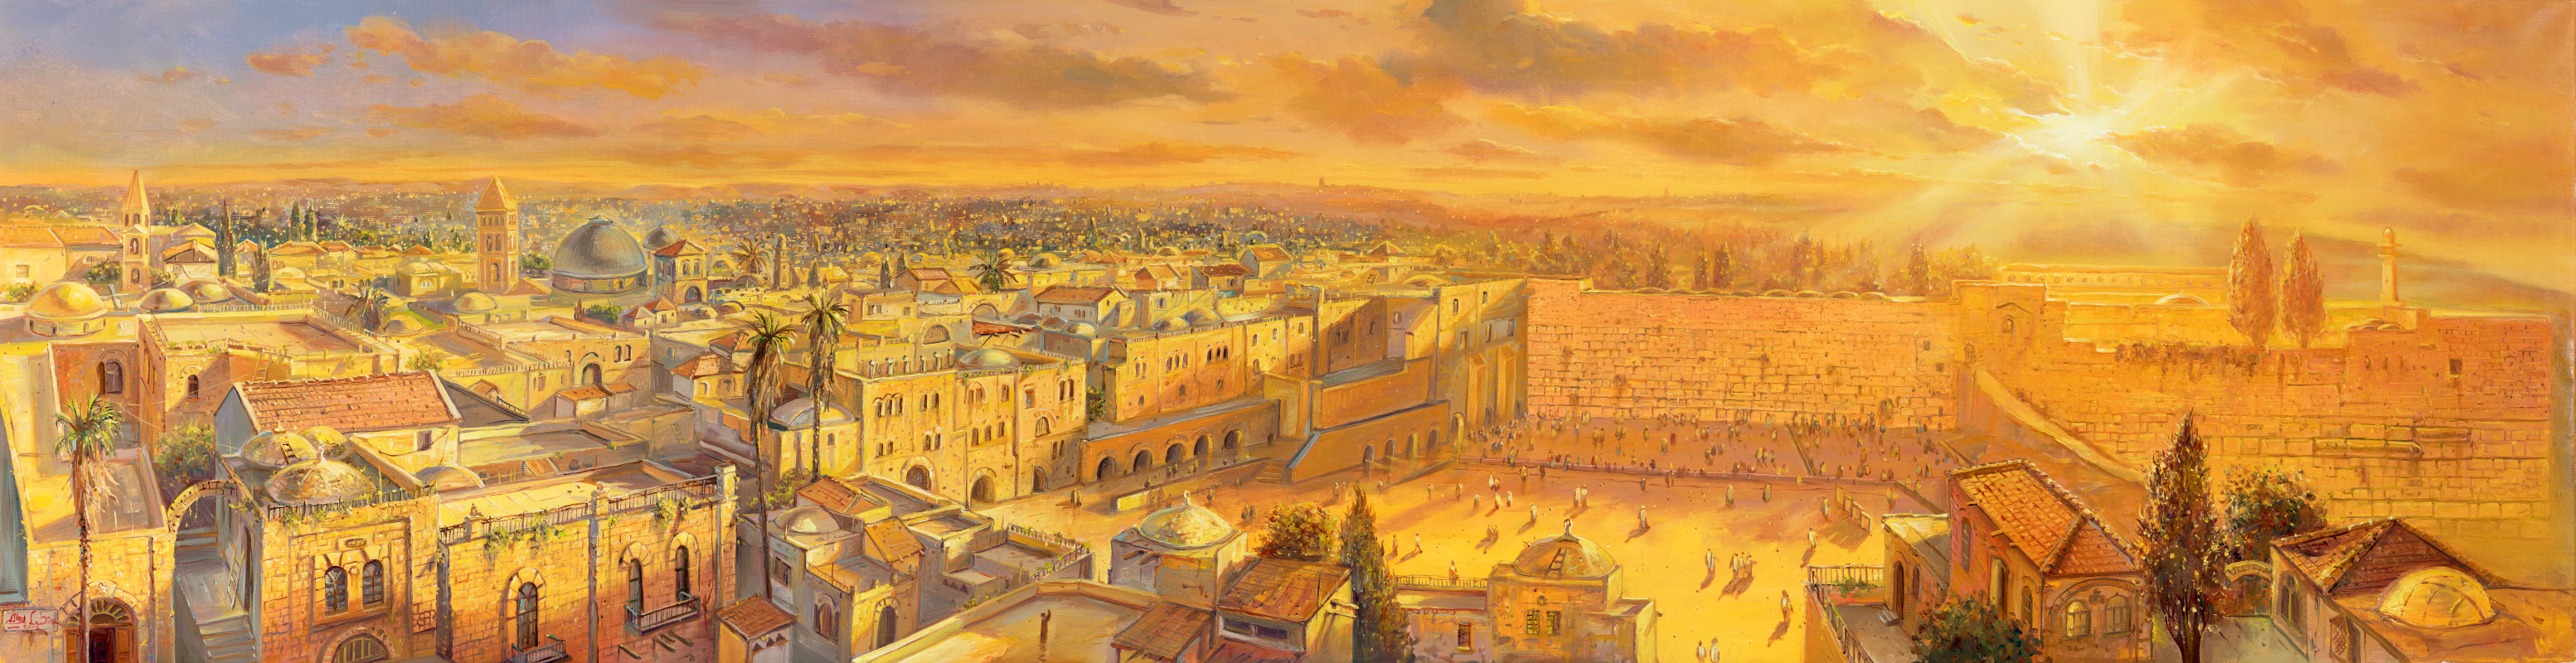 Sunrise in Holy Jerusalem, Painting by Alex Levin